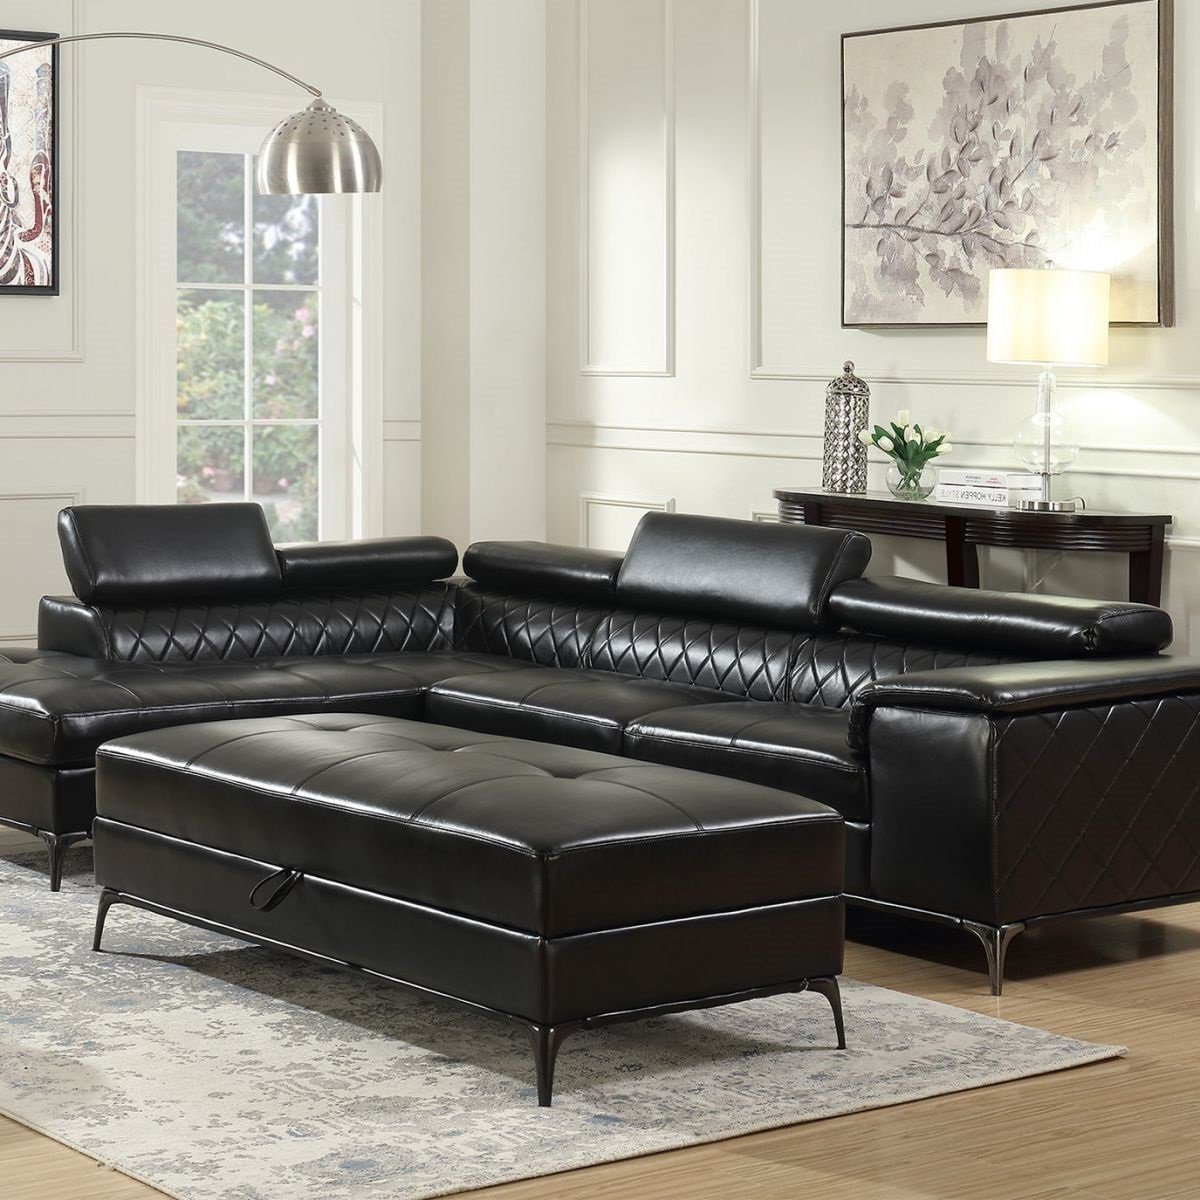 Cosmos Grey 2 Piece Sectionals With Laf Chaise In 2019 Worthington Black 2 Pc Sectional & Ottoman (View 9 of 20)